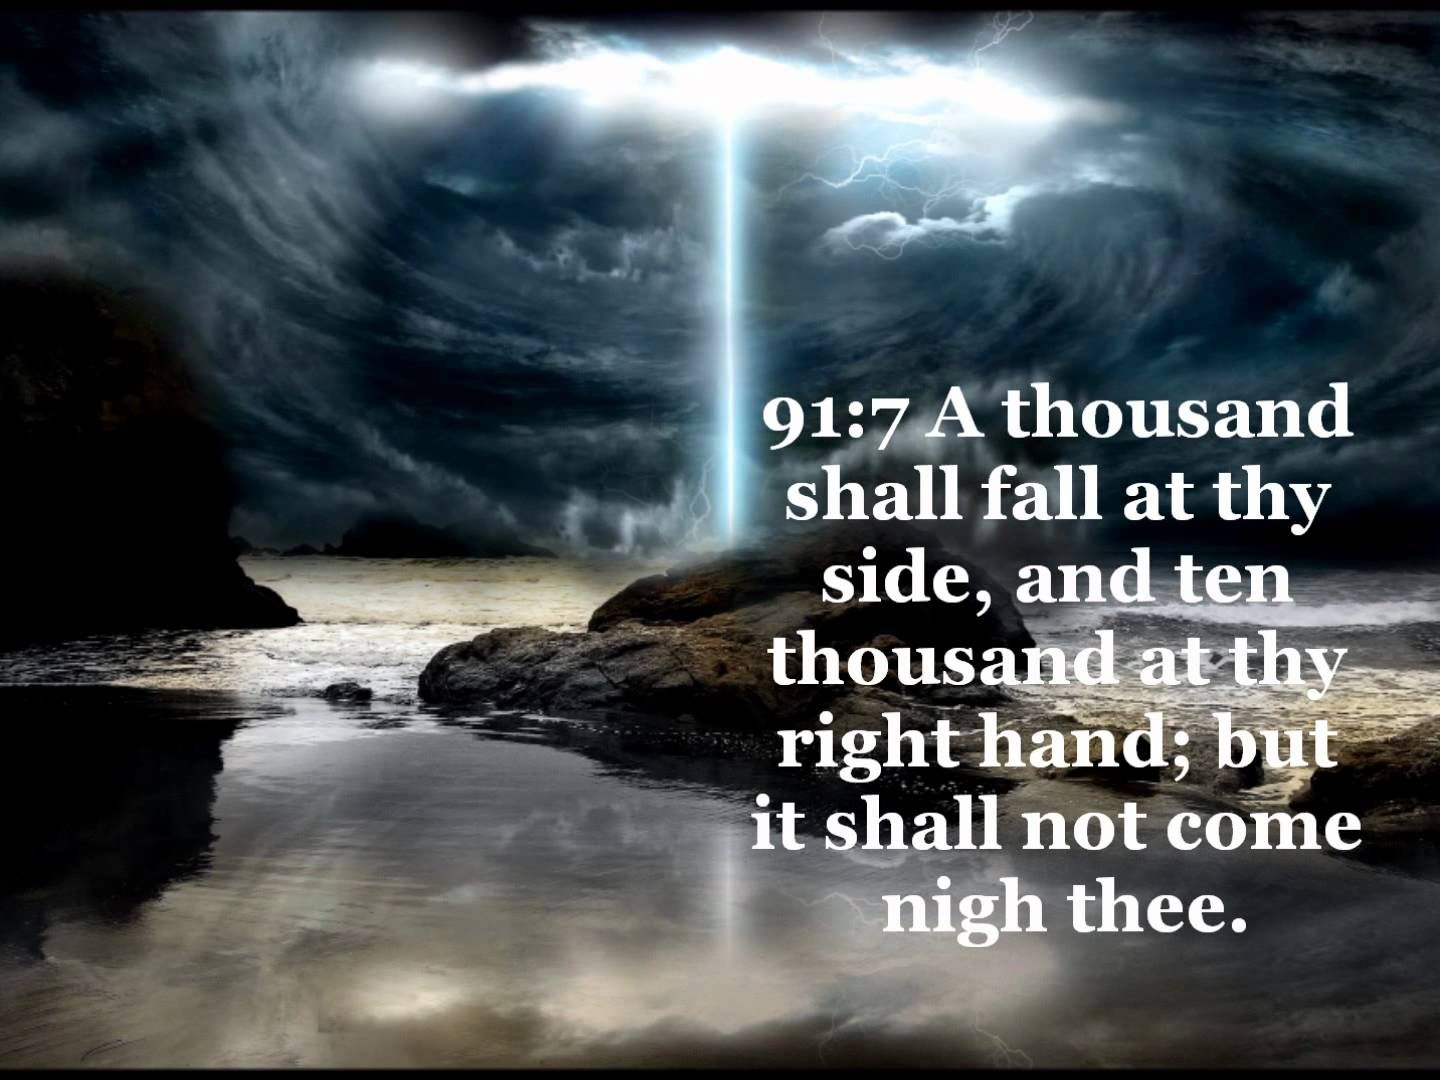 A thousand shall fall at thy side, and ten thousand at thy right hand; but it shall not come nigh thee!!   Psalm 91 kjv, Psalm 91, Psalms